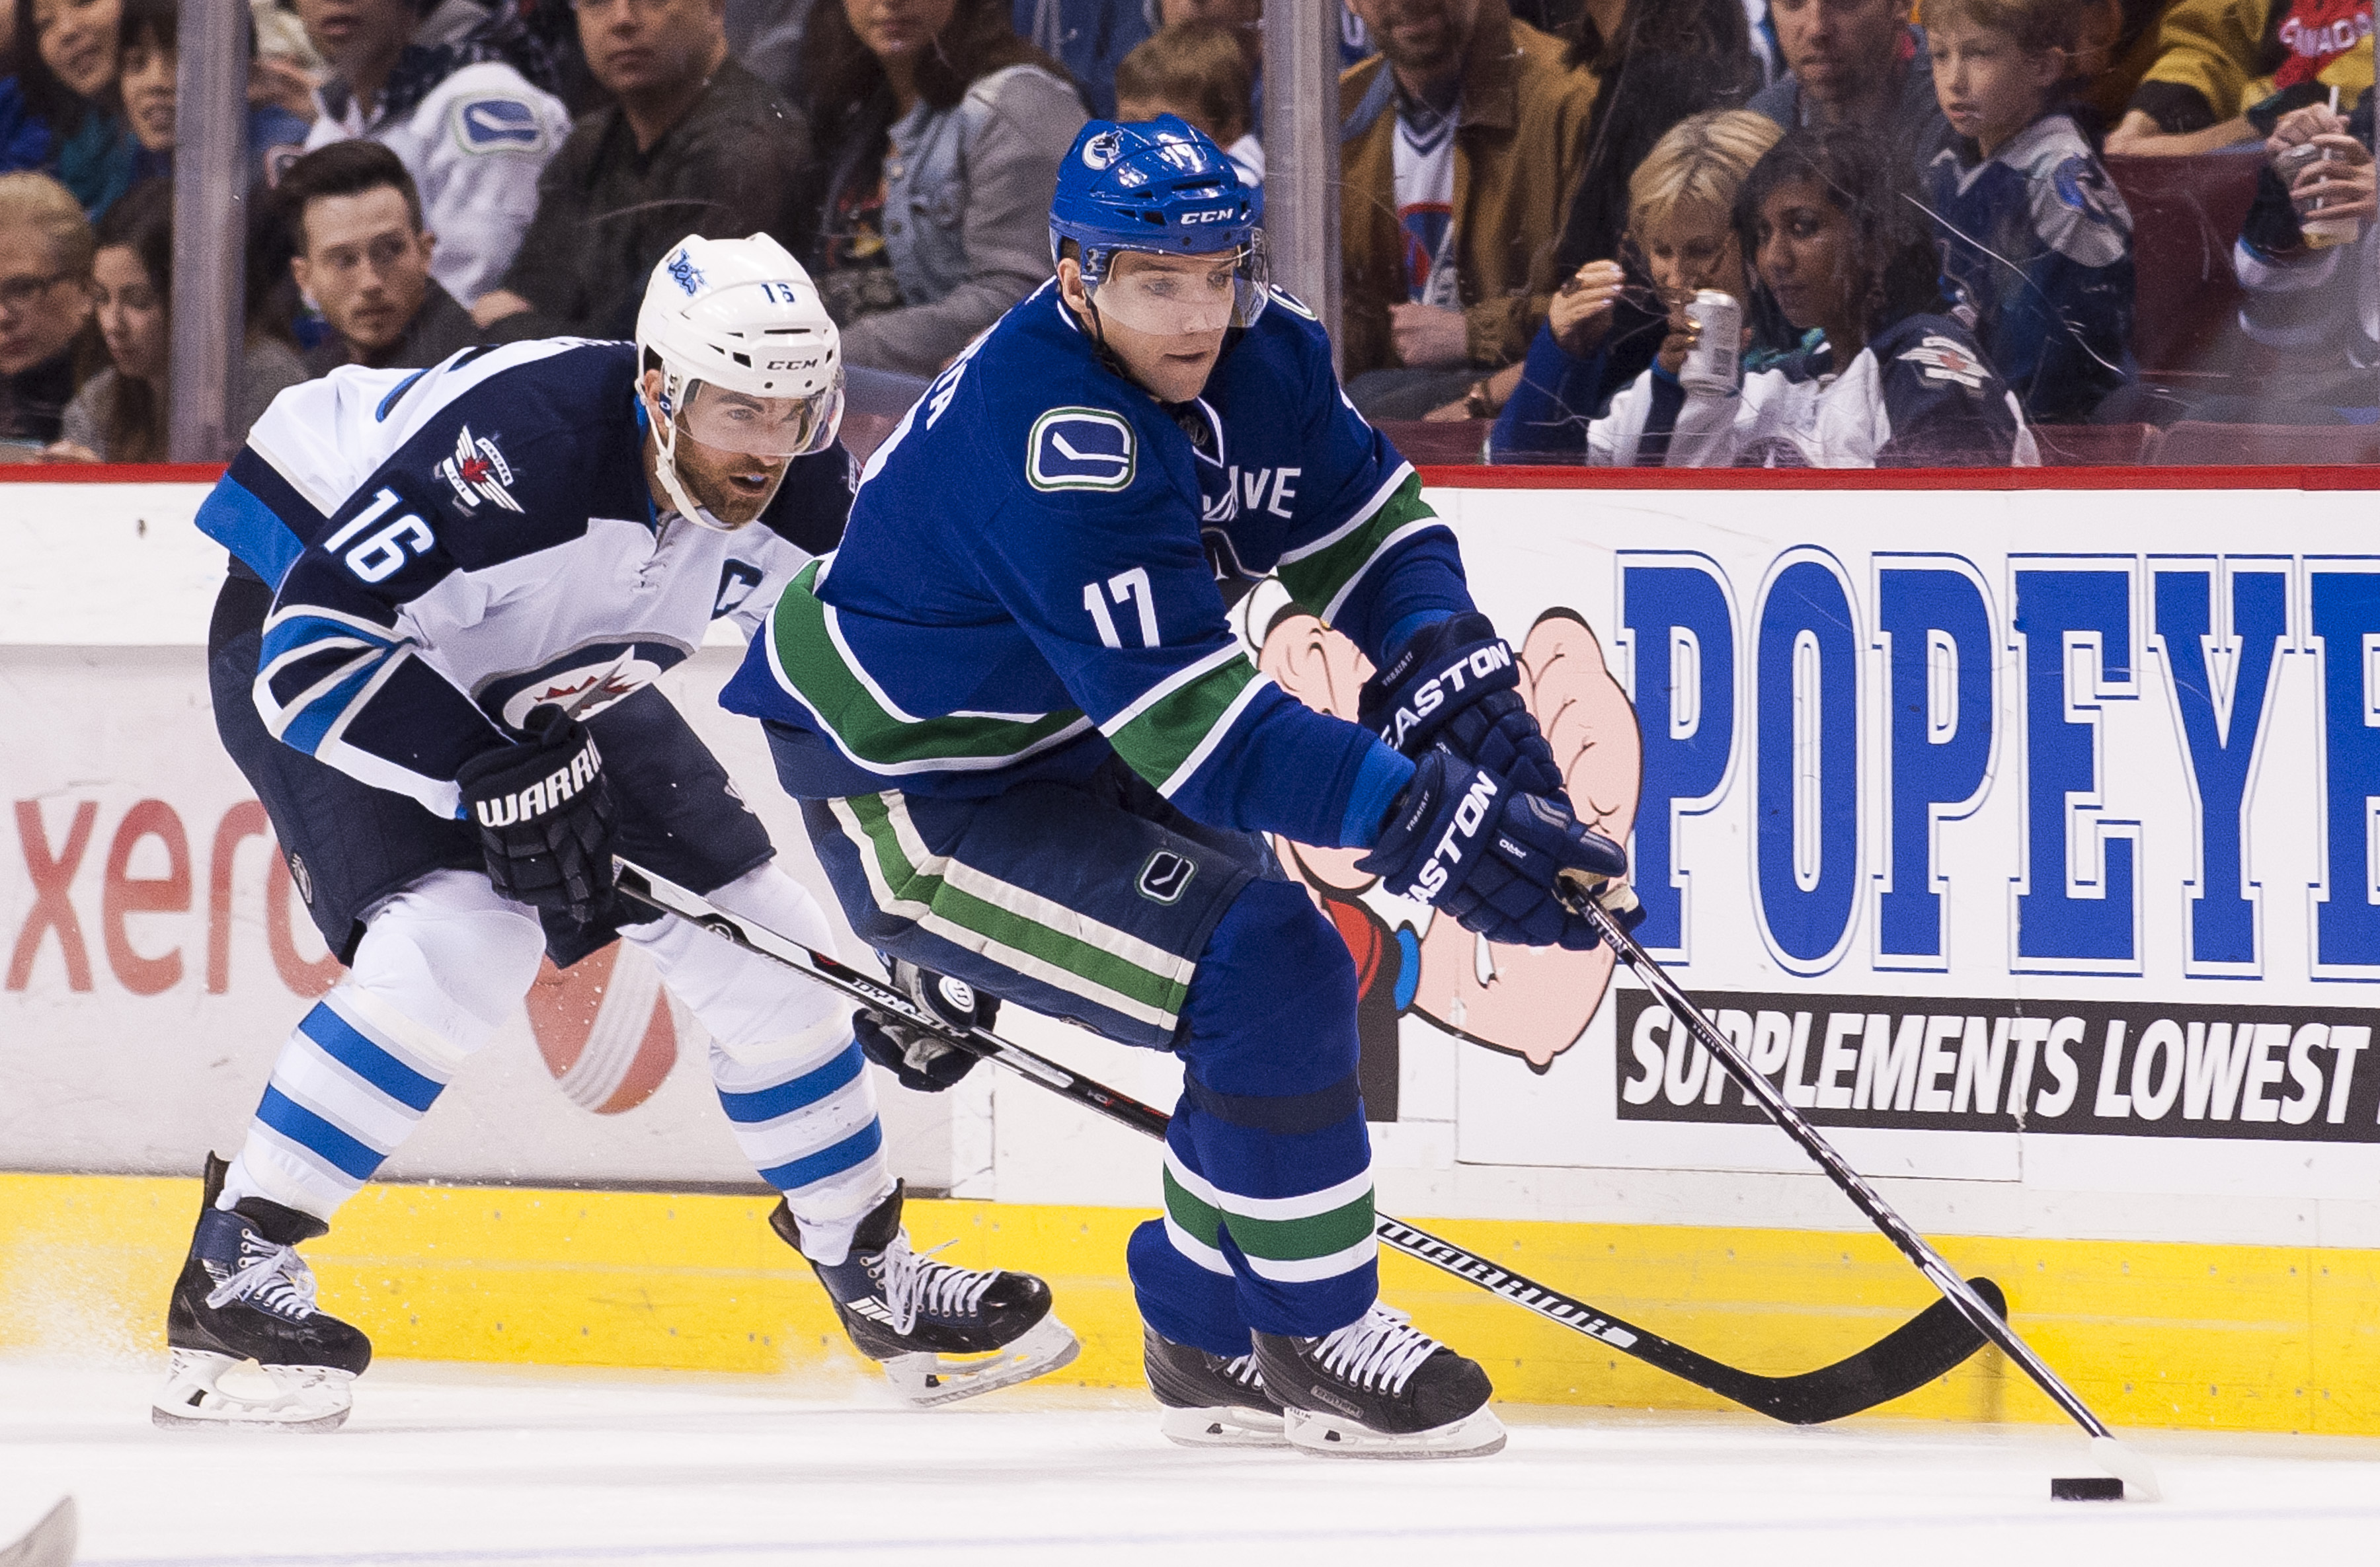 VANCOUVER, BC - MARCH 24: Andrew Ladd #16 of the Winnipeg Jets tries to check Radim Vrbata #17 of the Vancouver Canucks off the puck in NHL action on March, 24, 2015 at Rogers Arena in Vancouver, British Columbia, Canada.